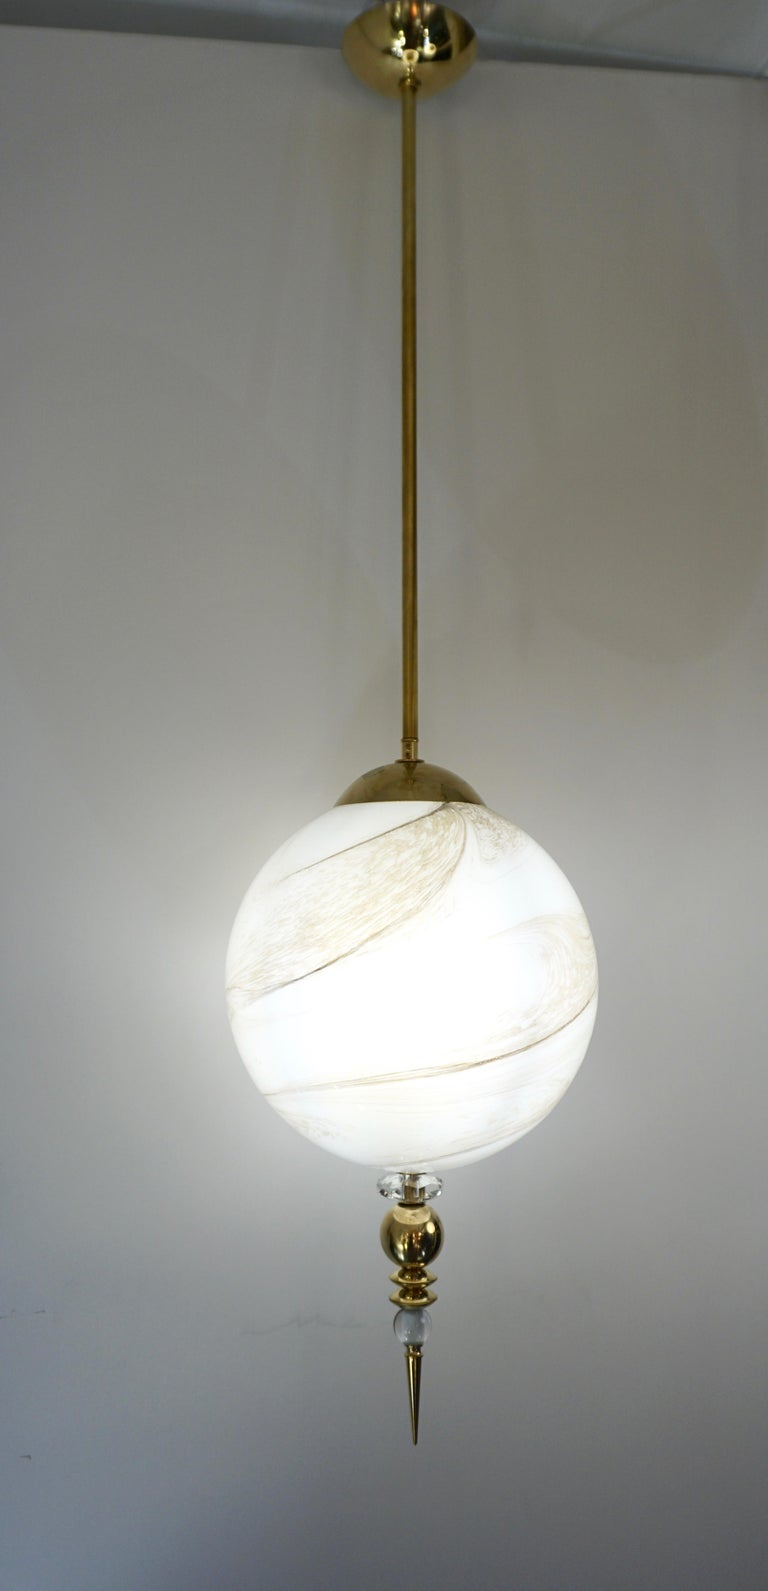 A modern round globe pendant chandelier of a geometric organic series, entirely handcrafted in Italy, the sphere in an innovative blown Murano glass to resemble alabaster with the benefit to be lighter and to remain over time of the same translucent